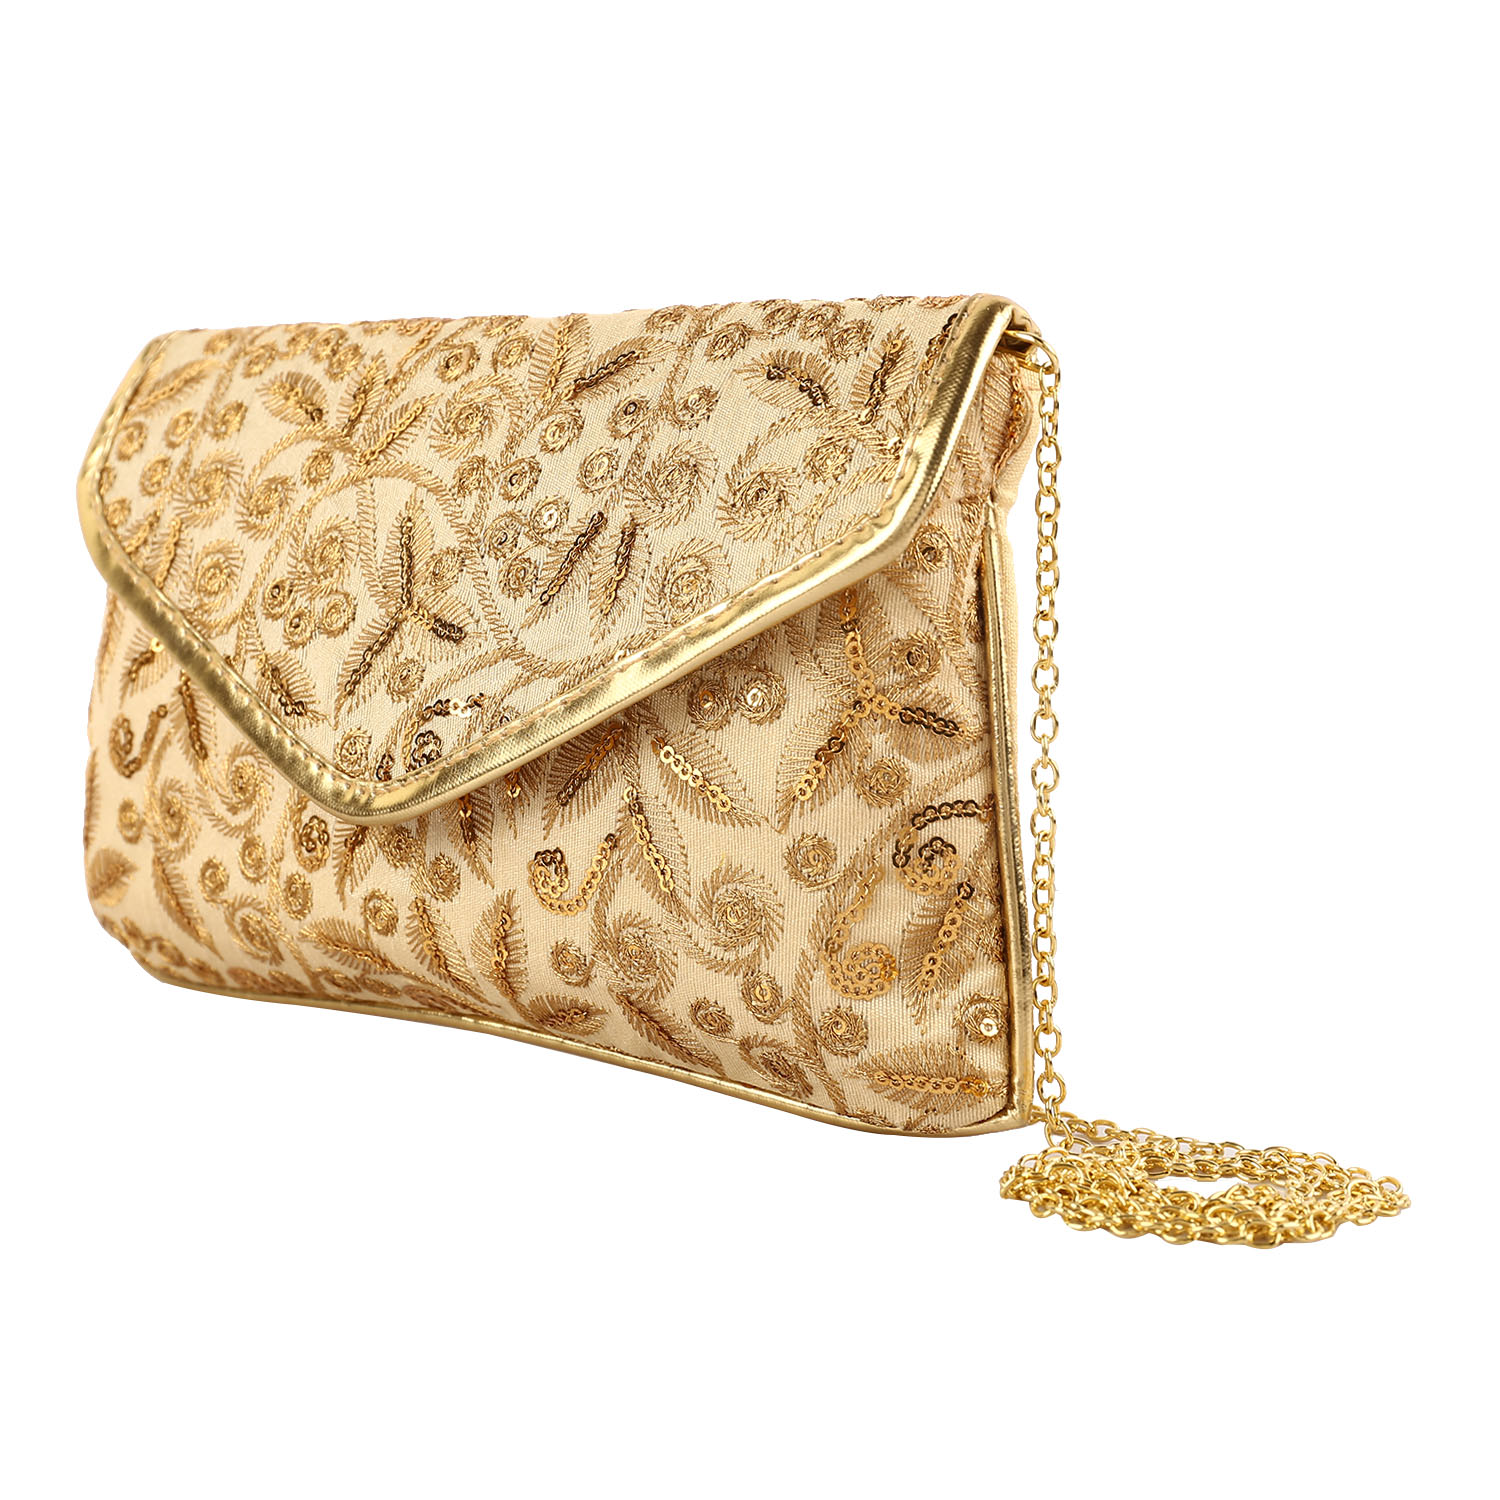 Kuber Industries 3 Pieces Handcrafted Embroidered Clutch Women Handbag (Gold) -CTKTC4021